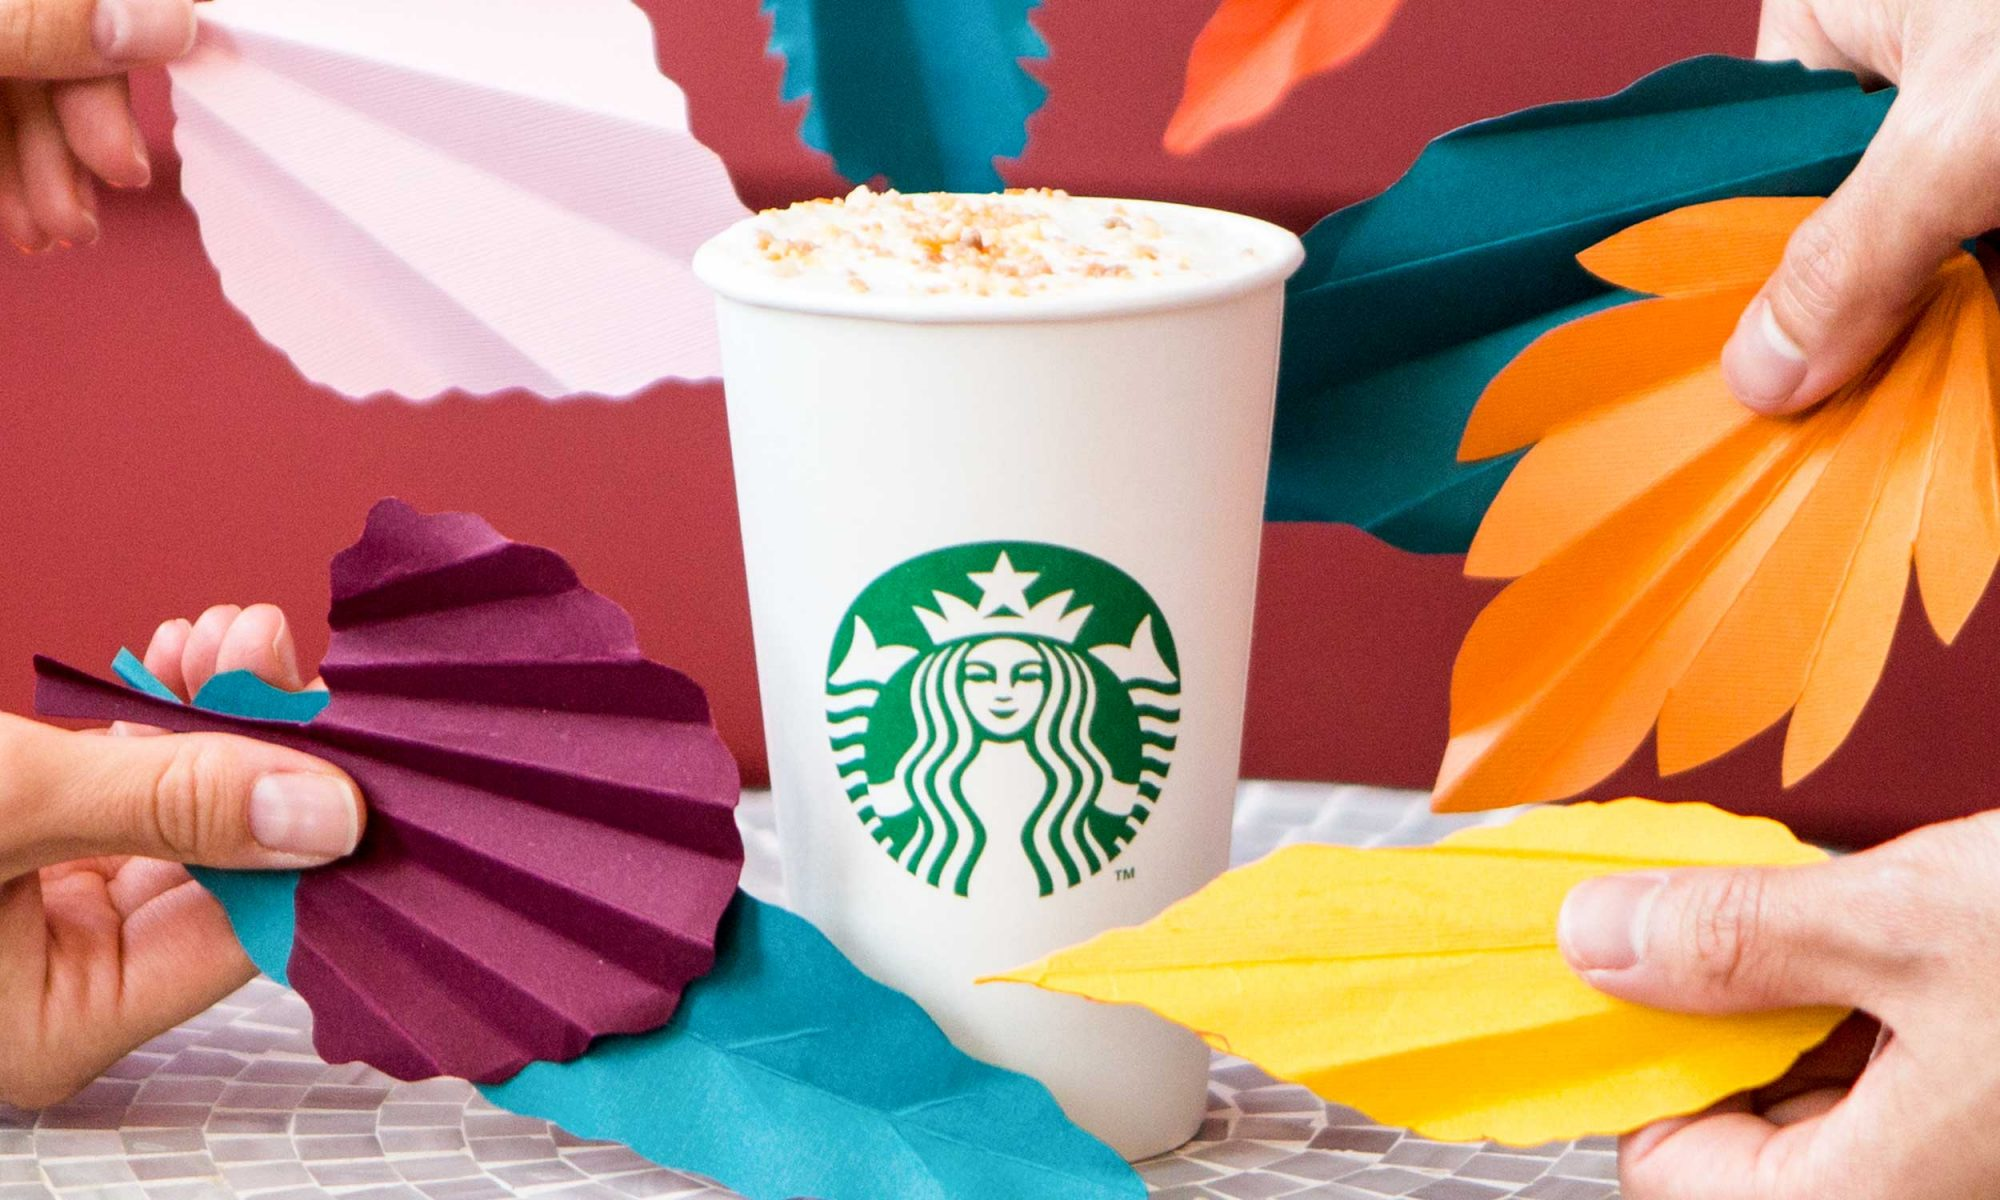 EC: Starbucks' New Fall Drink Is a Maple Pecan Latte